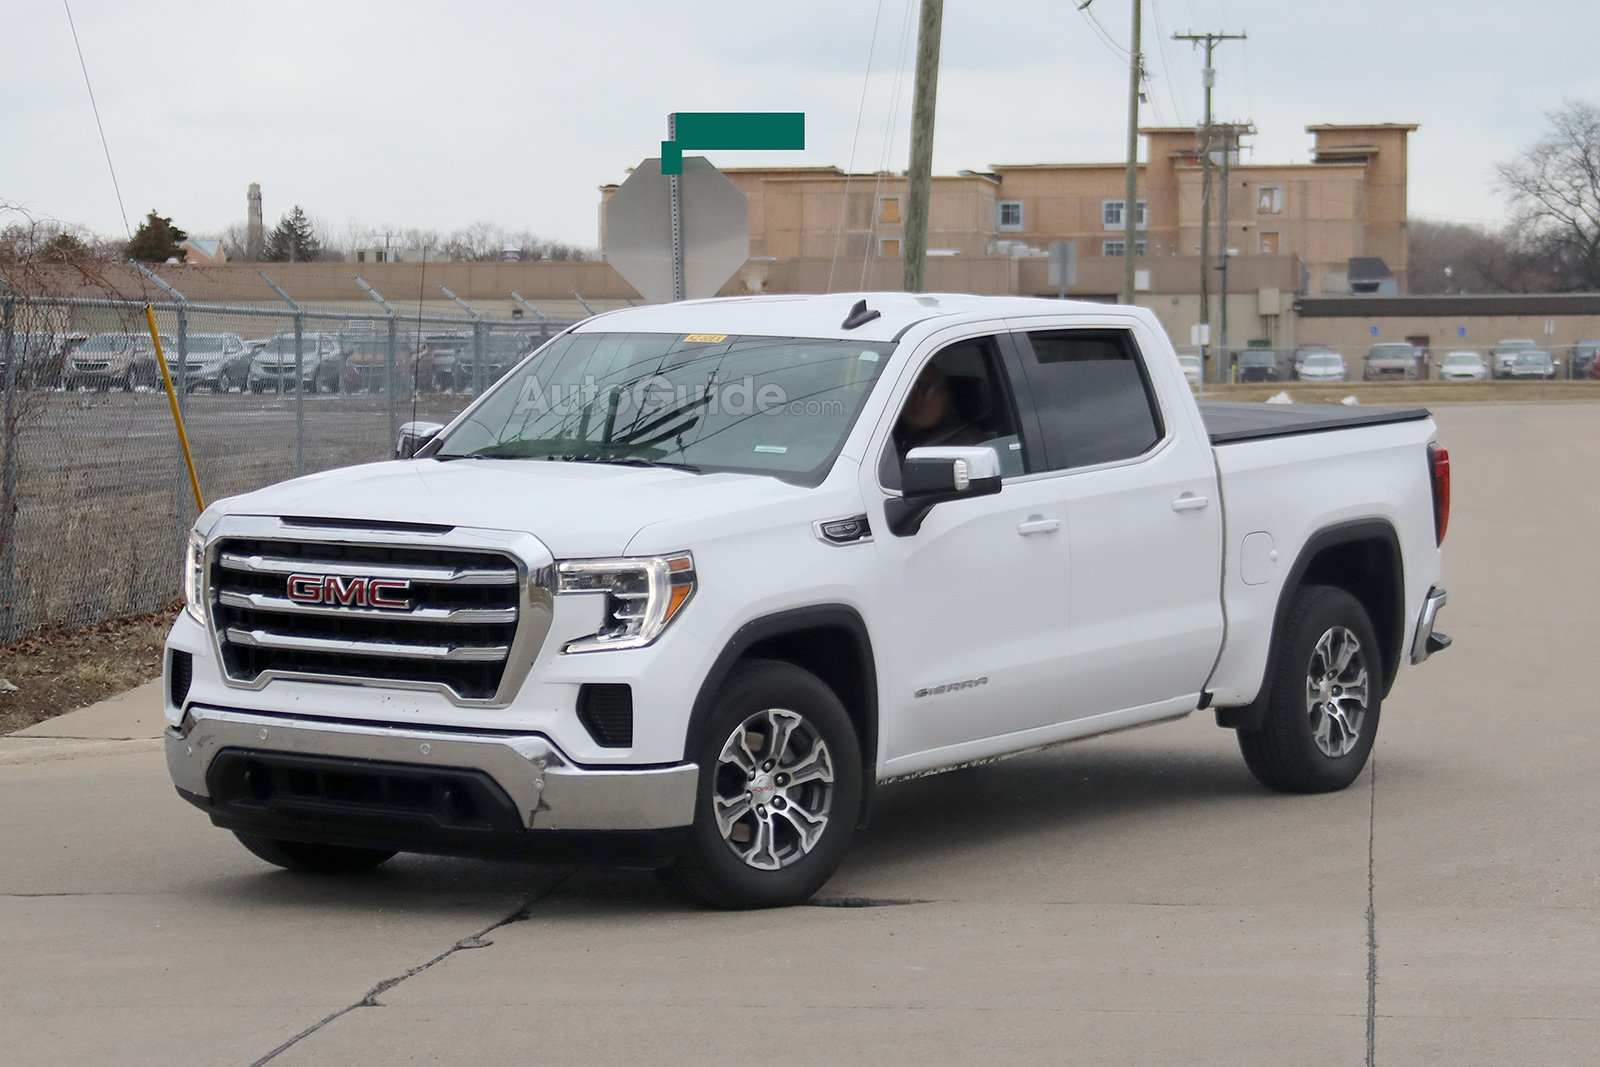 84 Best 2019 GMC Sierra 1500 Diesel Rumors